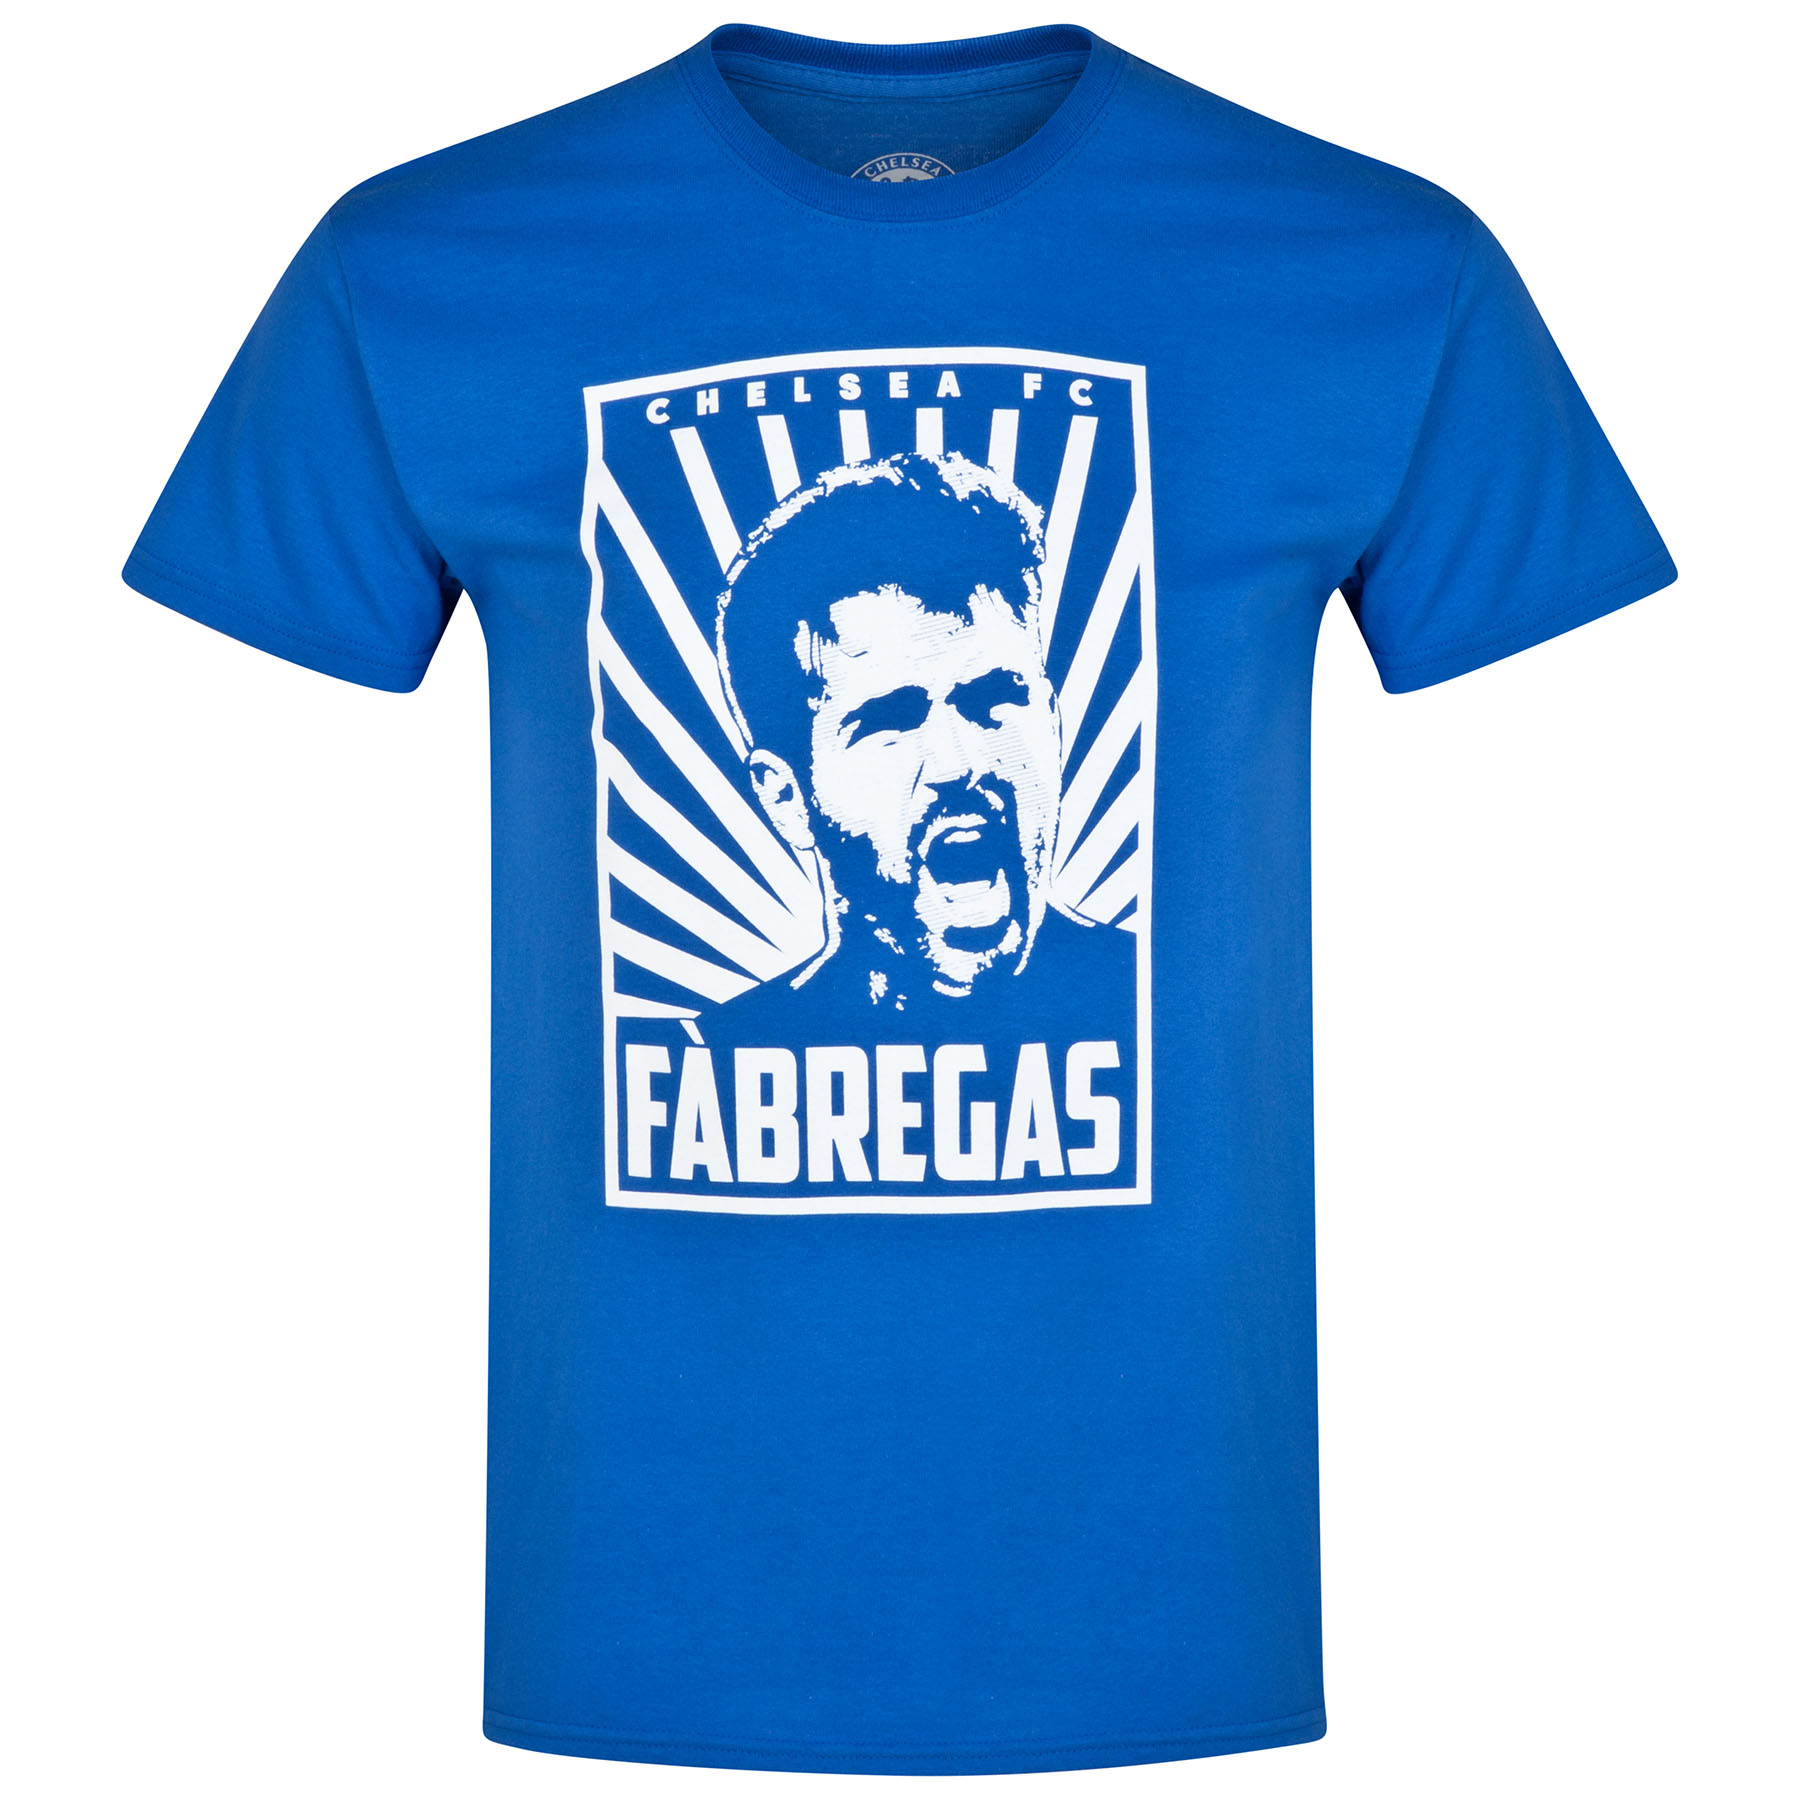 Chelsea Fabregas T-Shirt - Royal - Mens